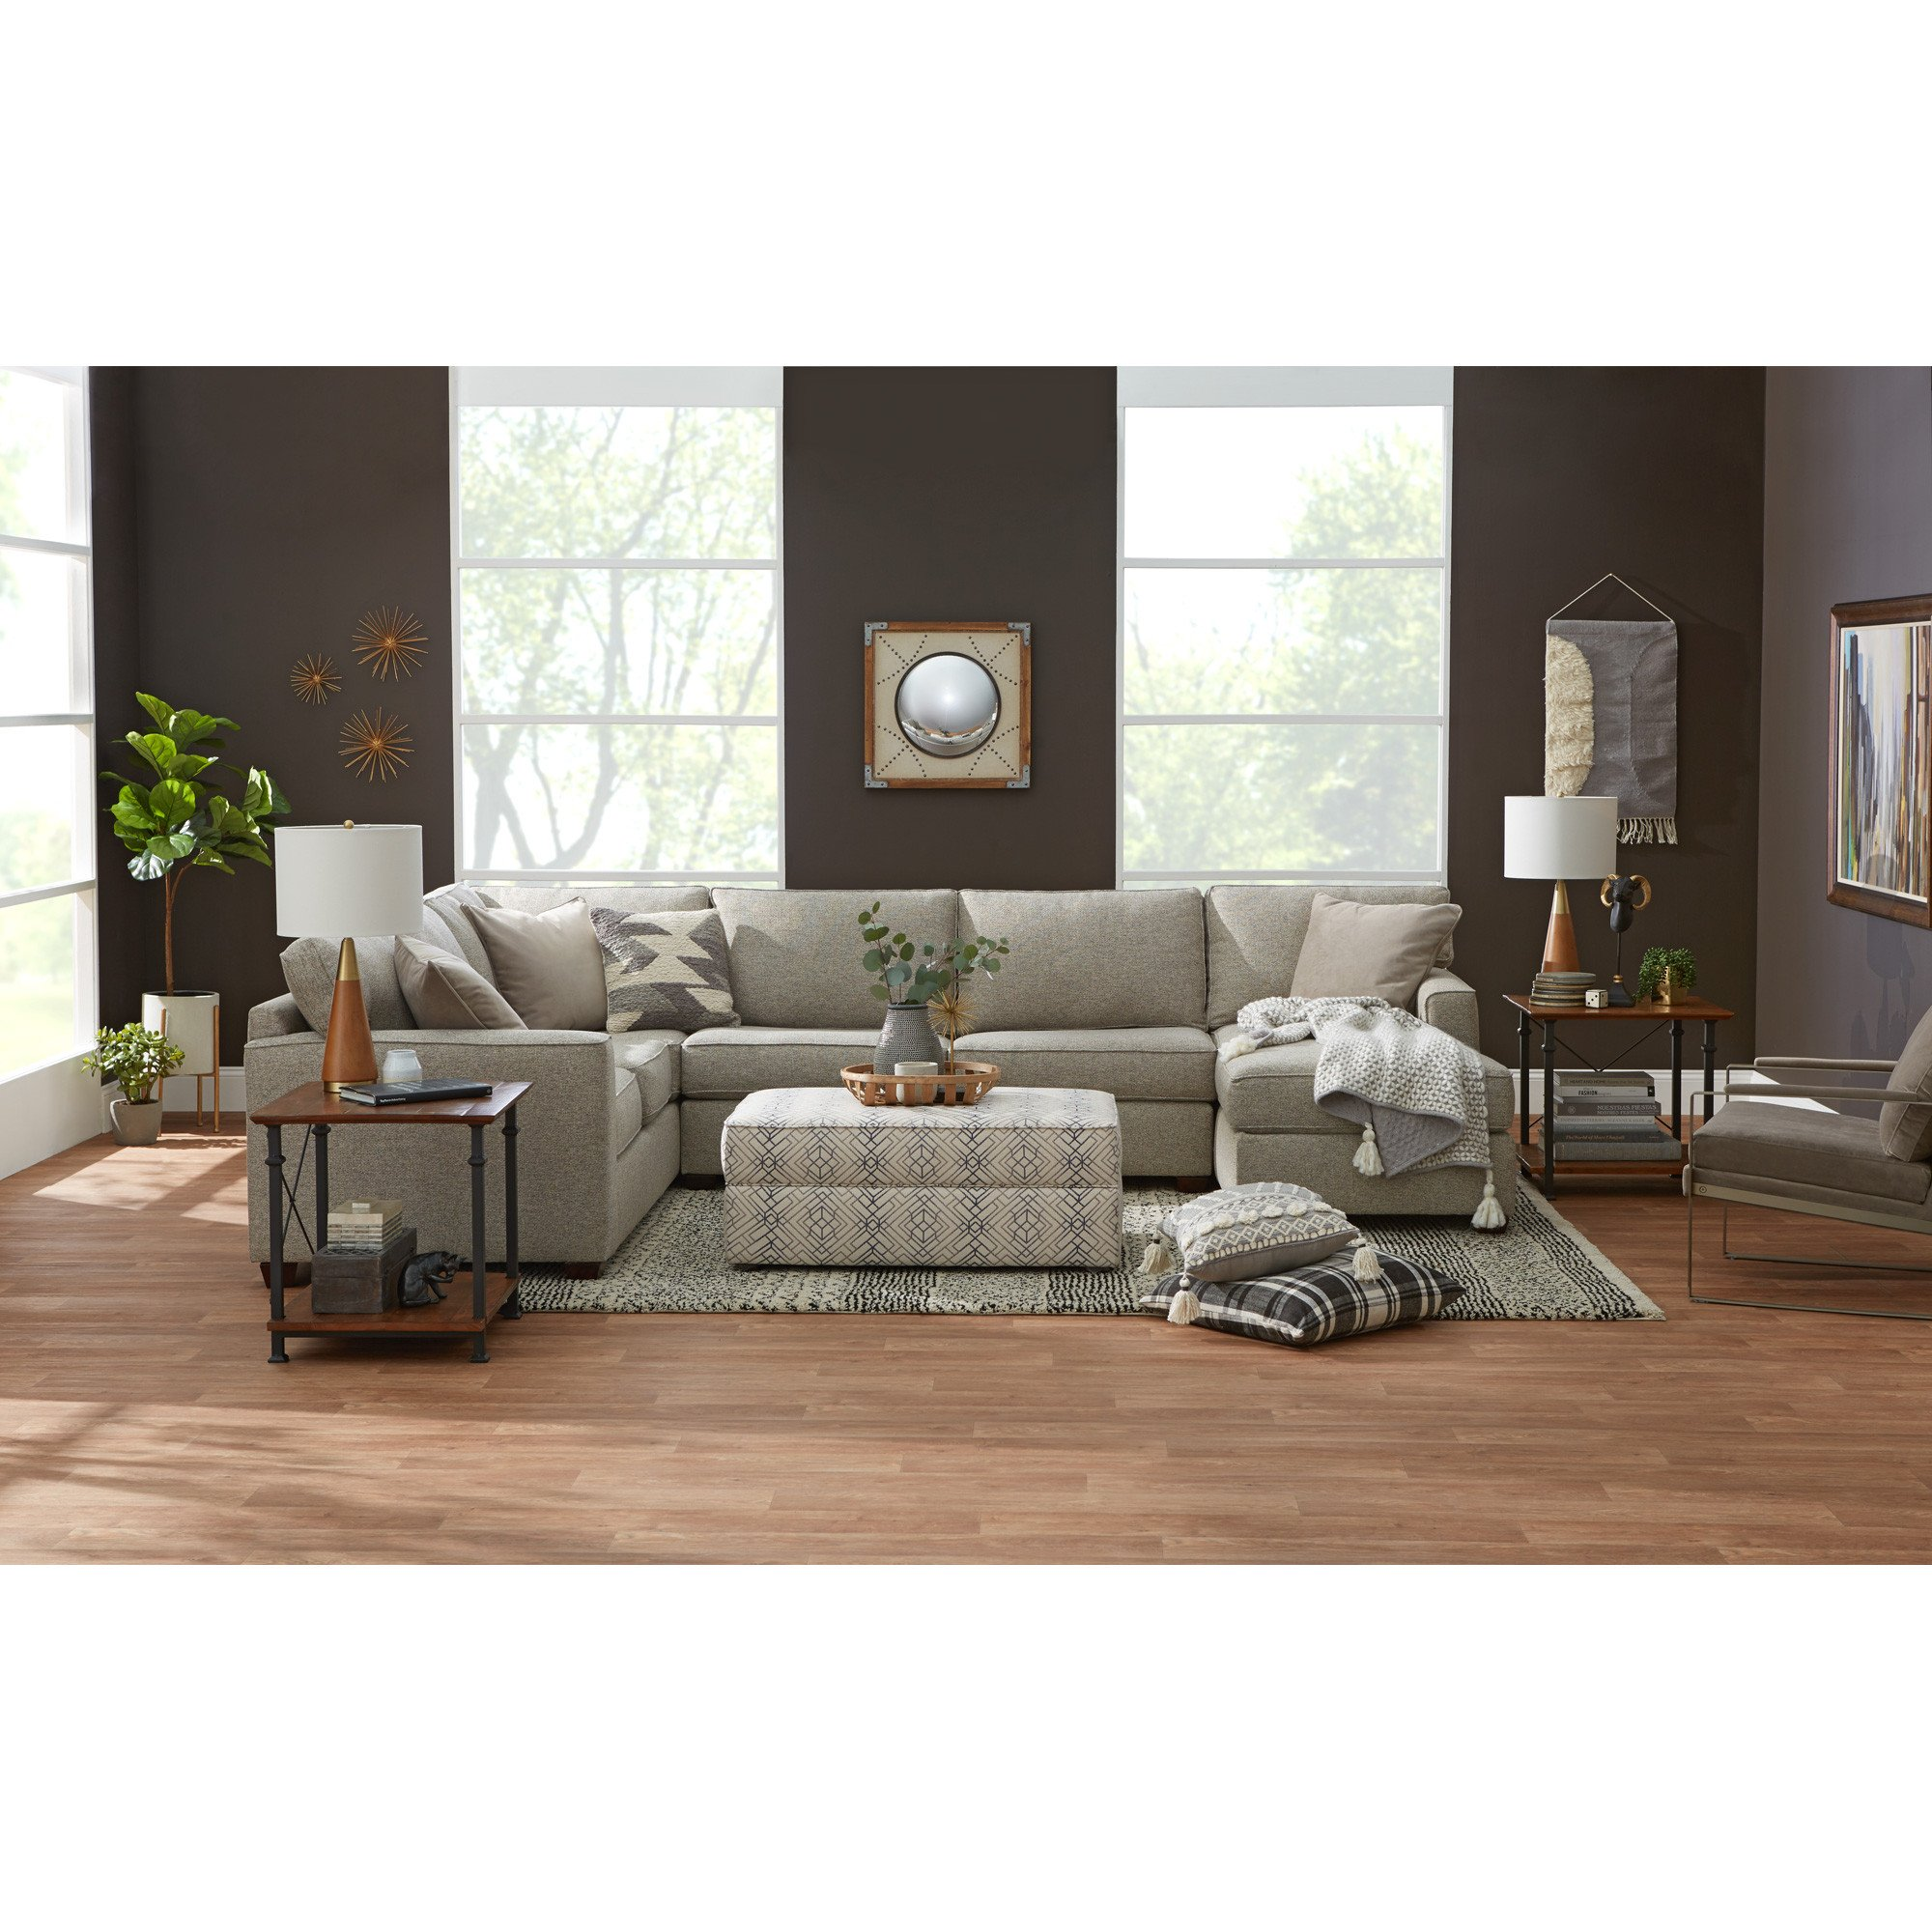 Chaise Chair for Bedroom Lovely Rise 3 Piece Right Sectional Living Rooms